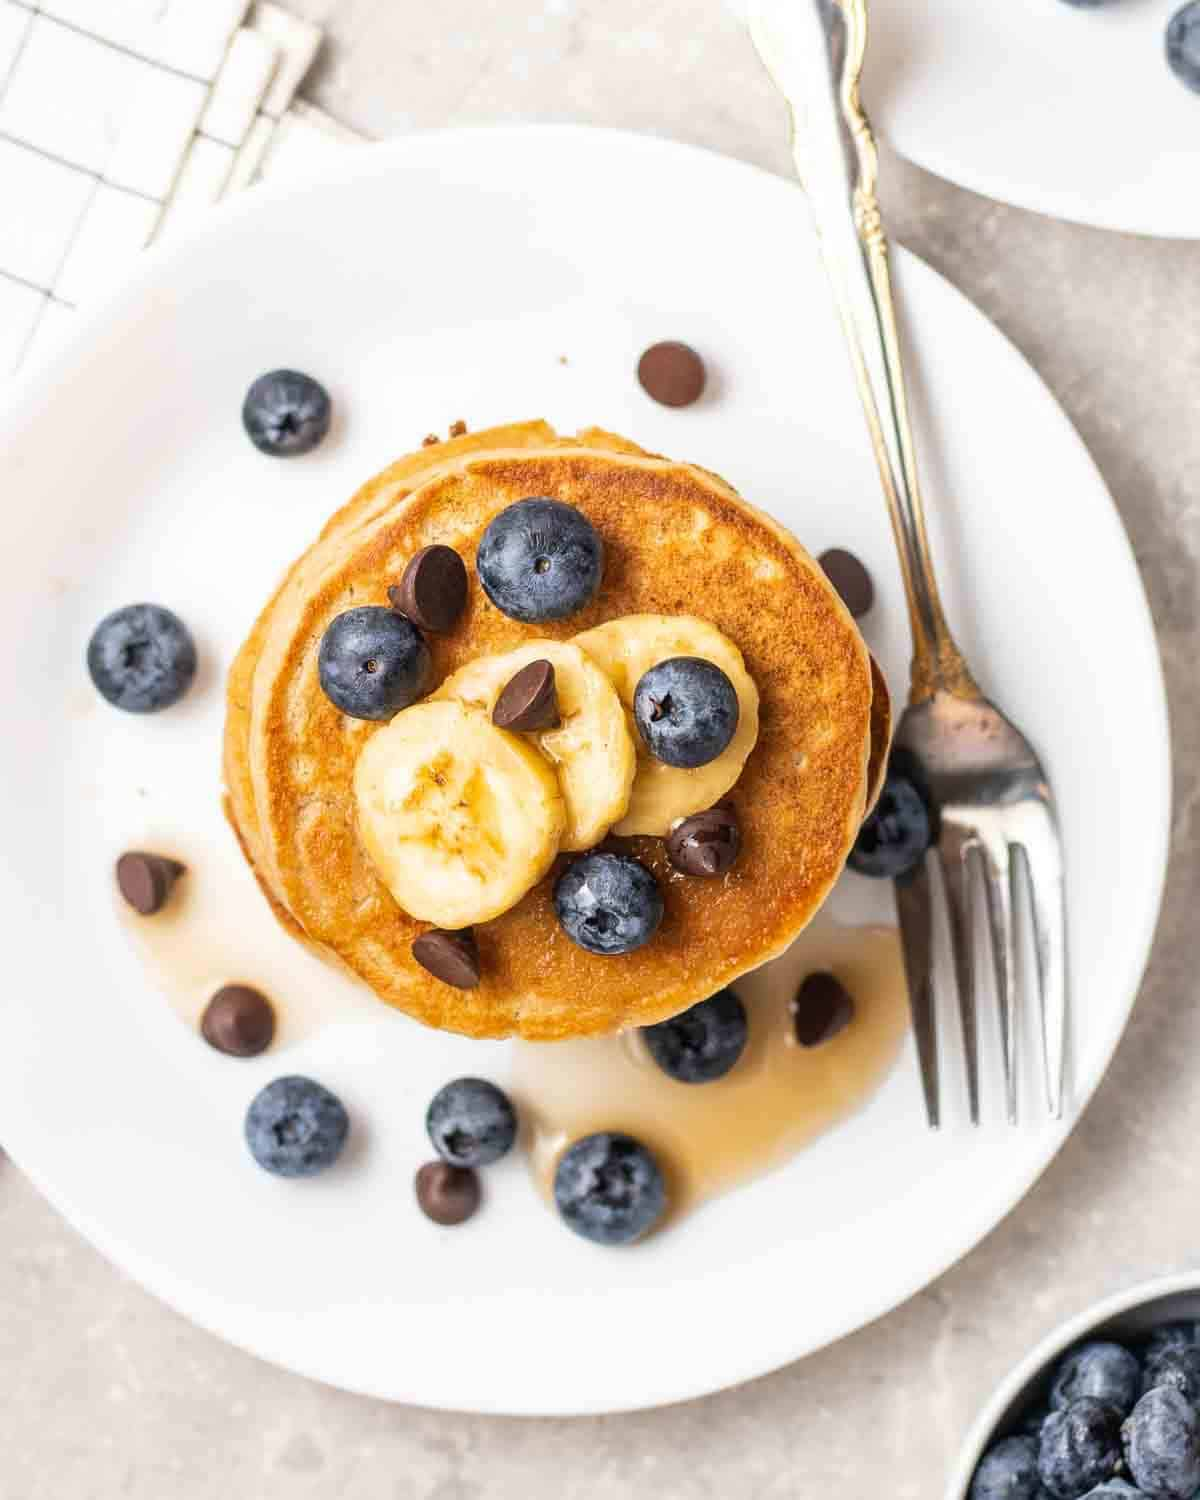 Pancakes on a white plate with a fork topped with blueberries, bananas and chocolate chips.